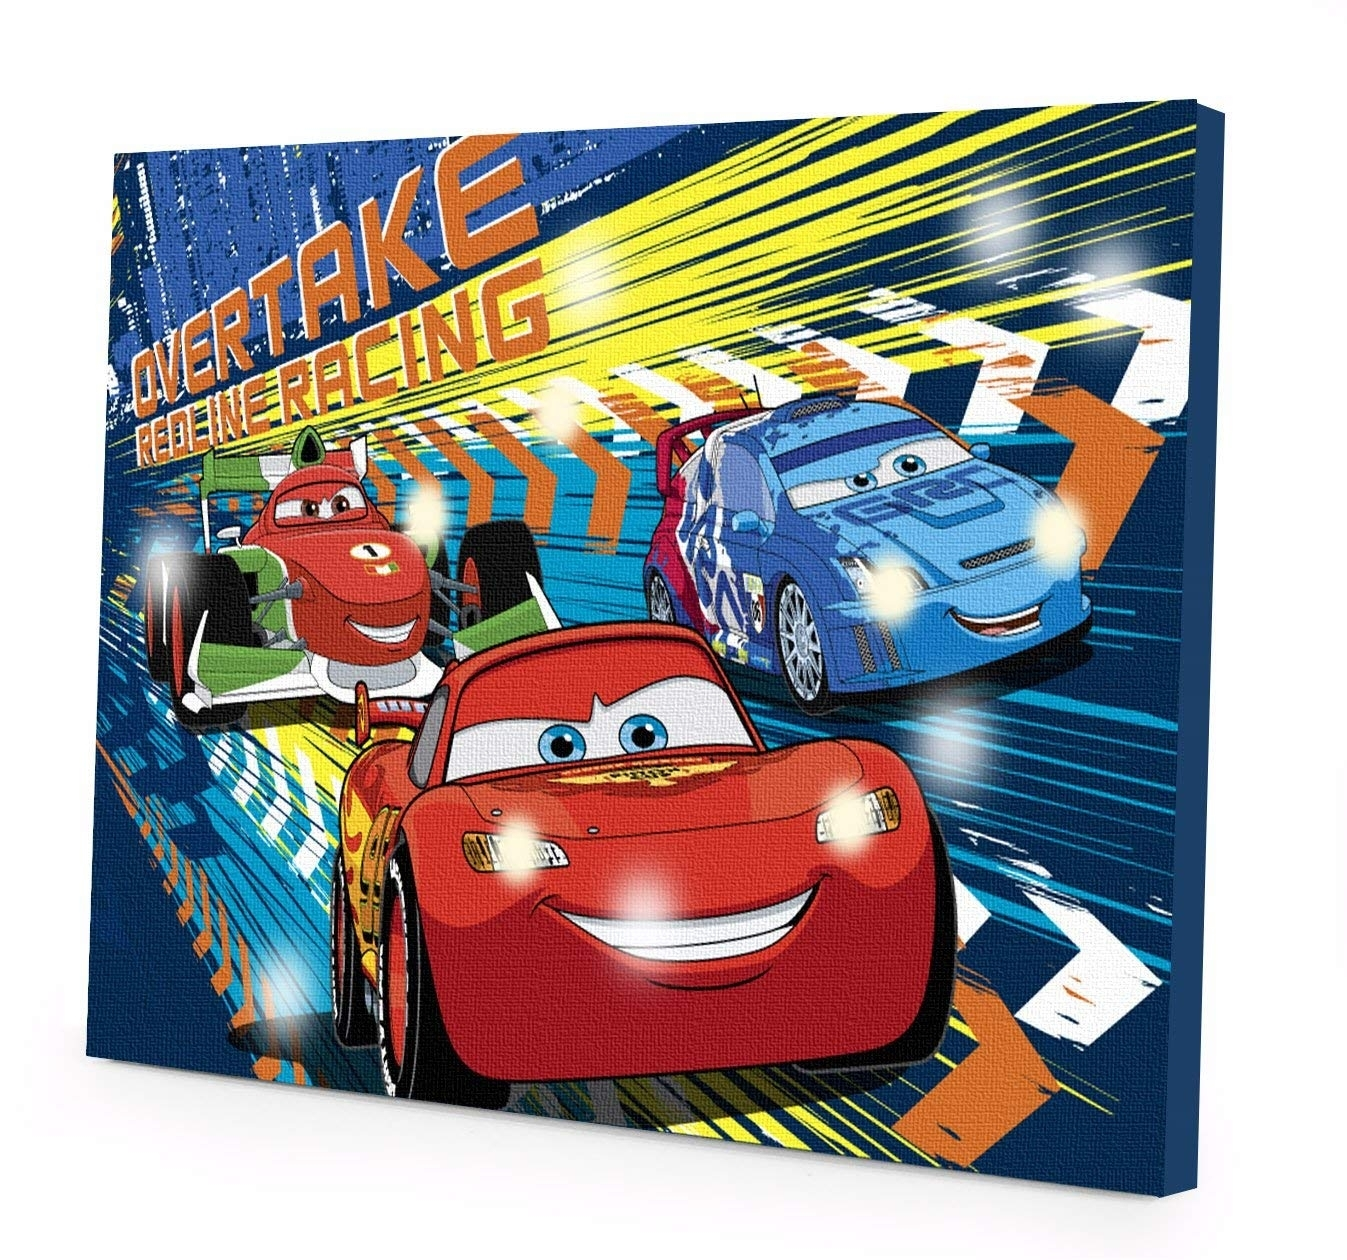 Amazon: Disney Cars 3 Led Canvas Wall Art, 15.75-Inch X 11.5 in Car Canvas Wall Art (Image 9 of 20)